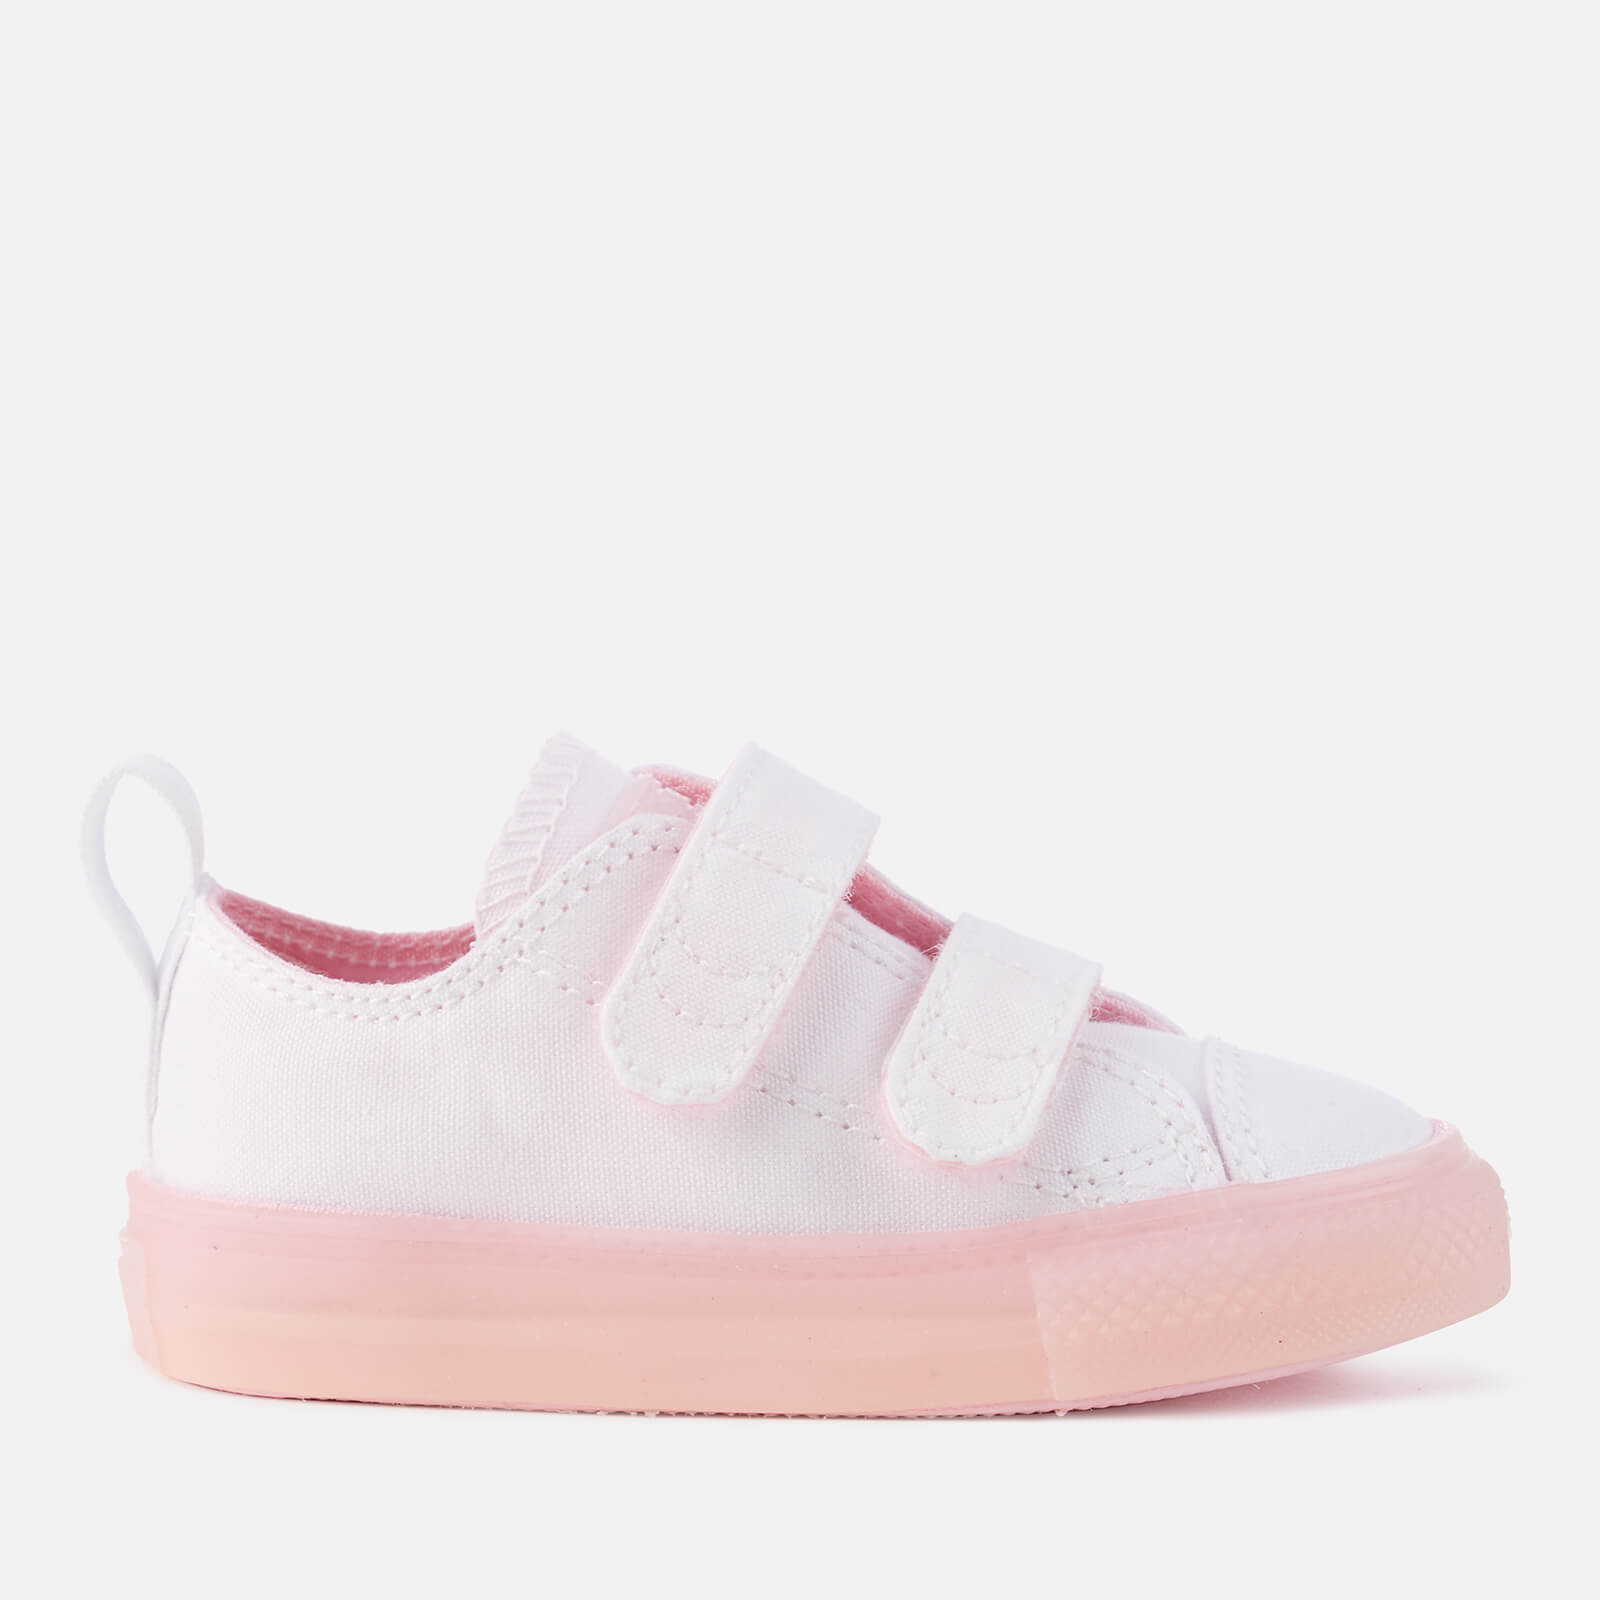 b01f60bf65ca Converse Toddlers  Chuck Taylor All Star 2V Ox Trainers - White Cherry  Blossom Junior Clothing